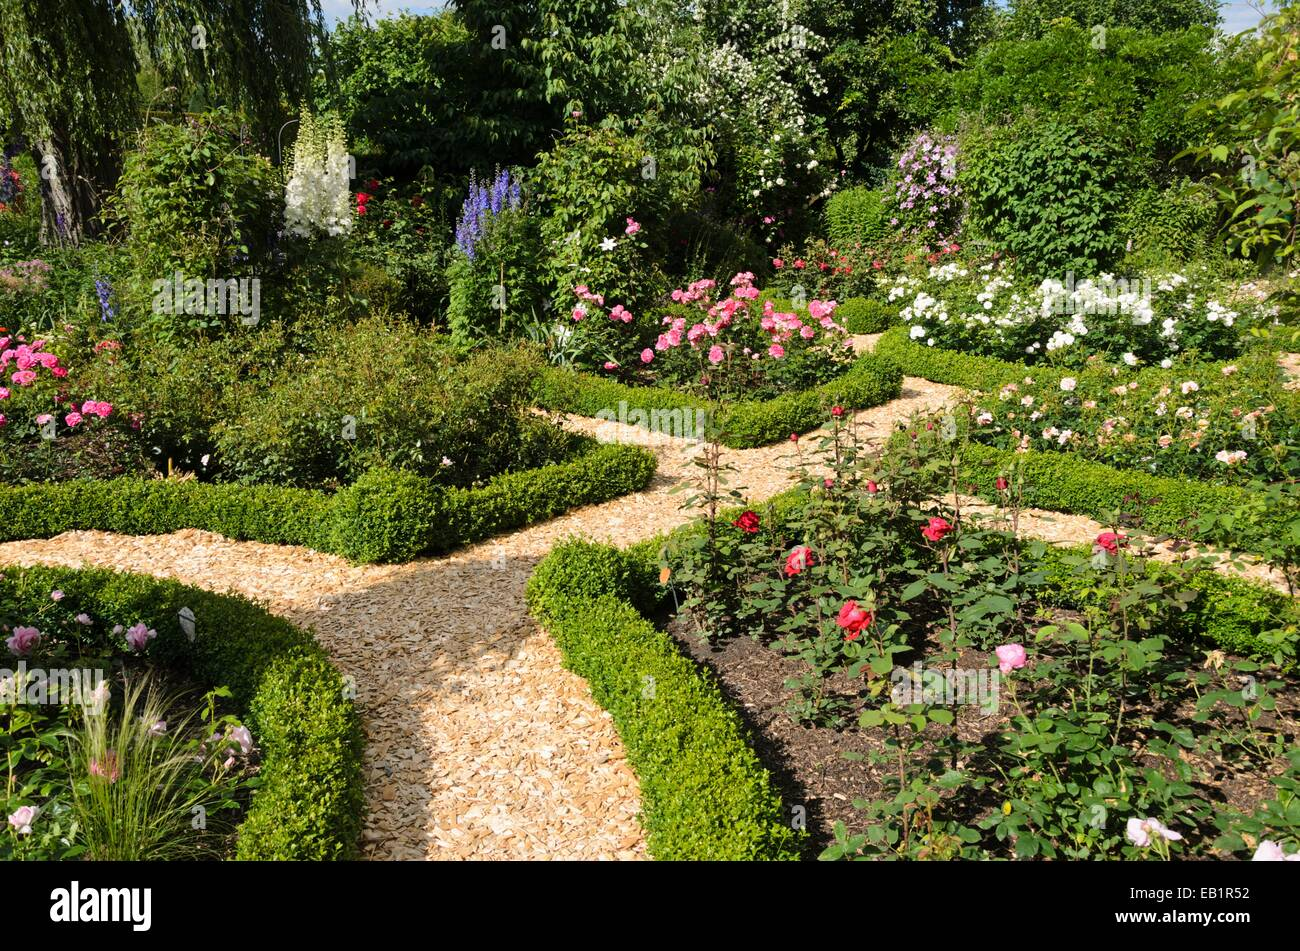 Boxwood Hedges In A Rose Garden. Design: Marianne And Detlef Lüdke